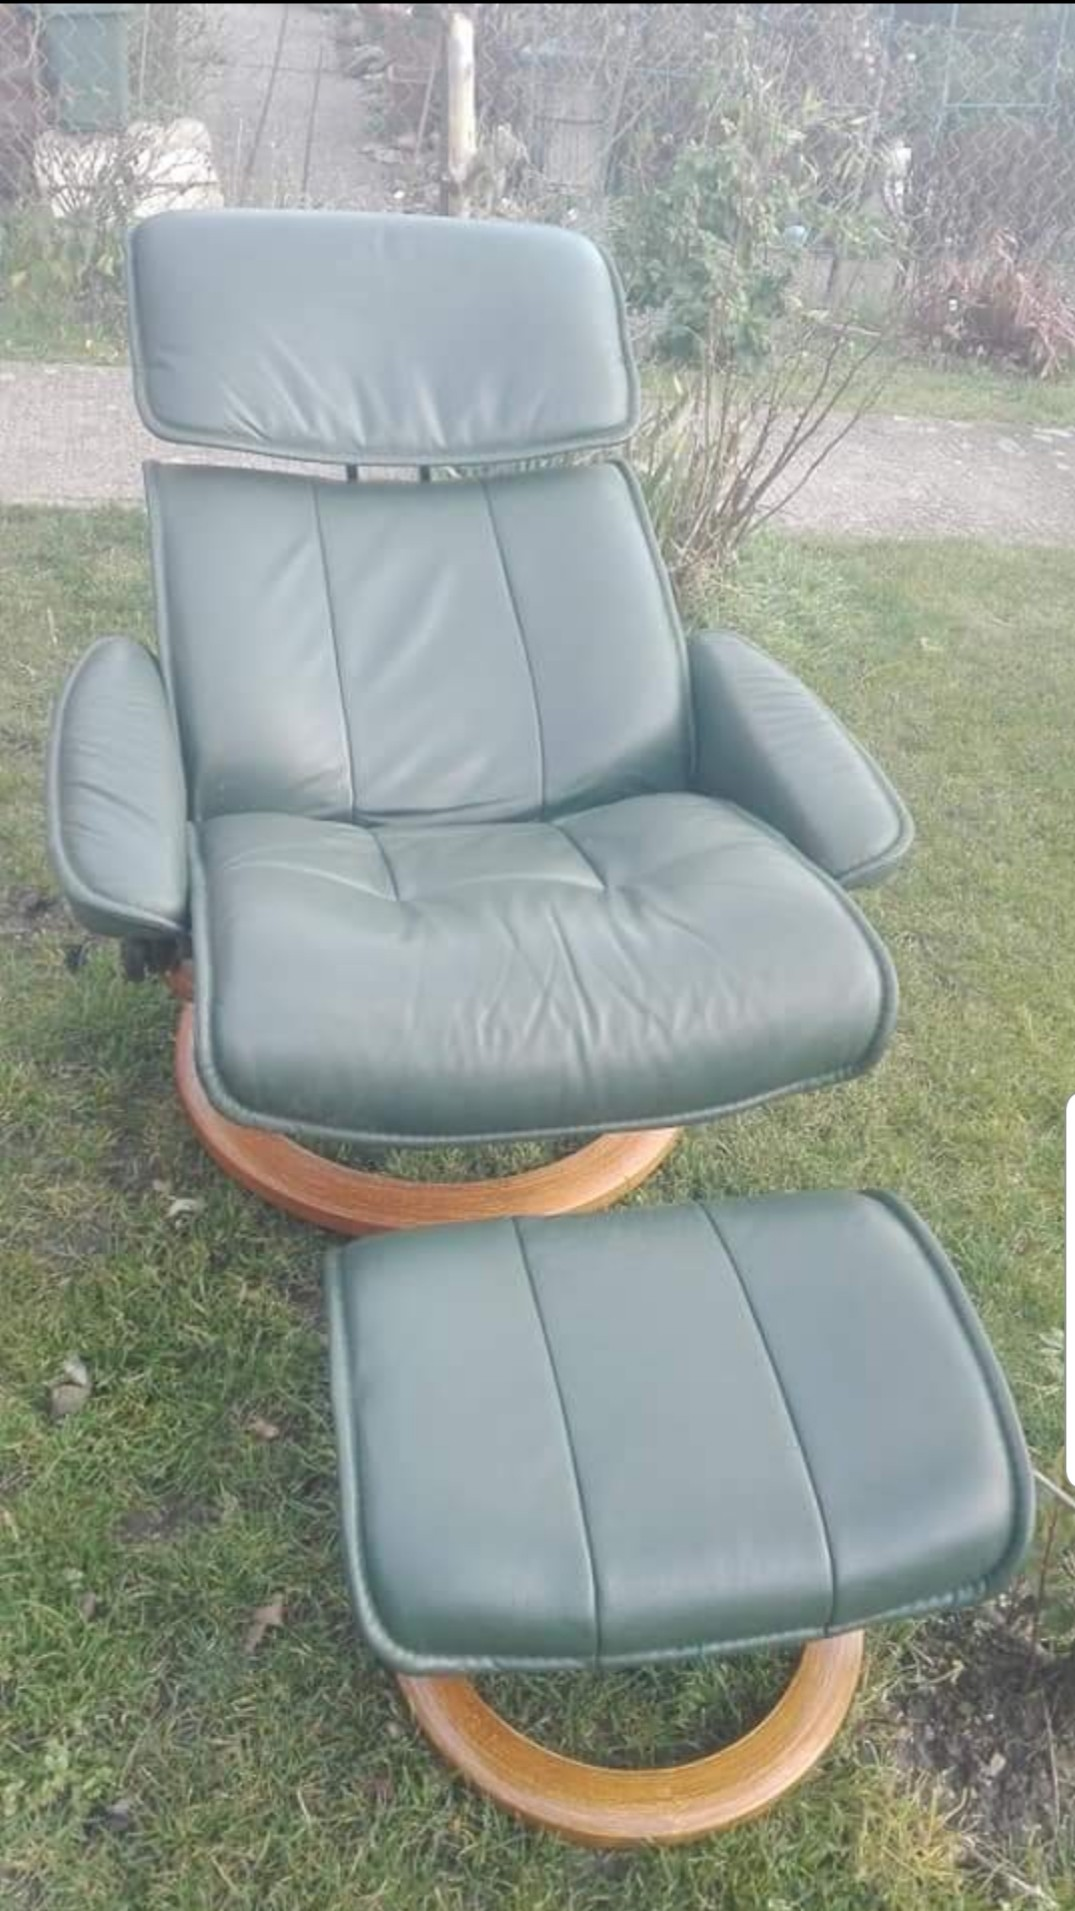 second hand household furniture buy and sell preloved rh preloved co uk places that will buy used furniture near me places that buy furniture for cash near me